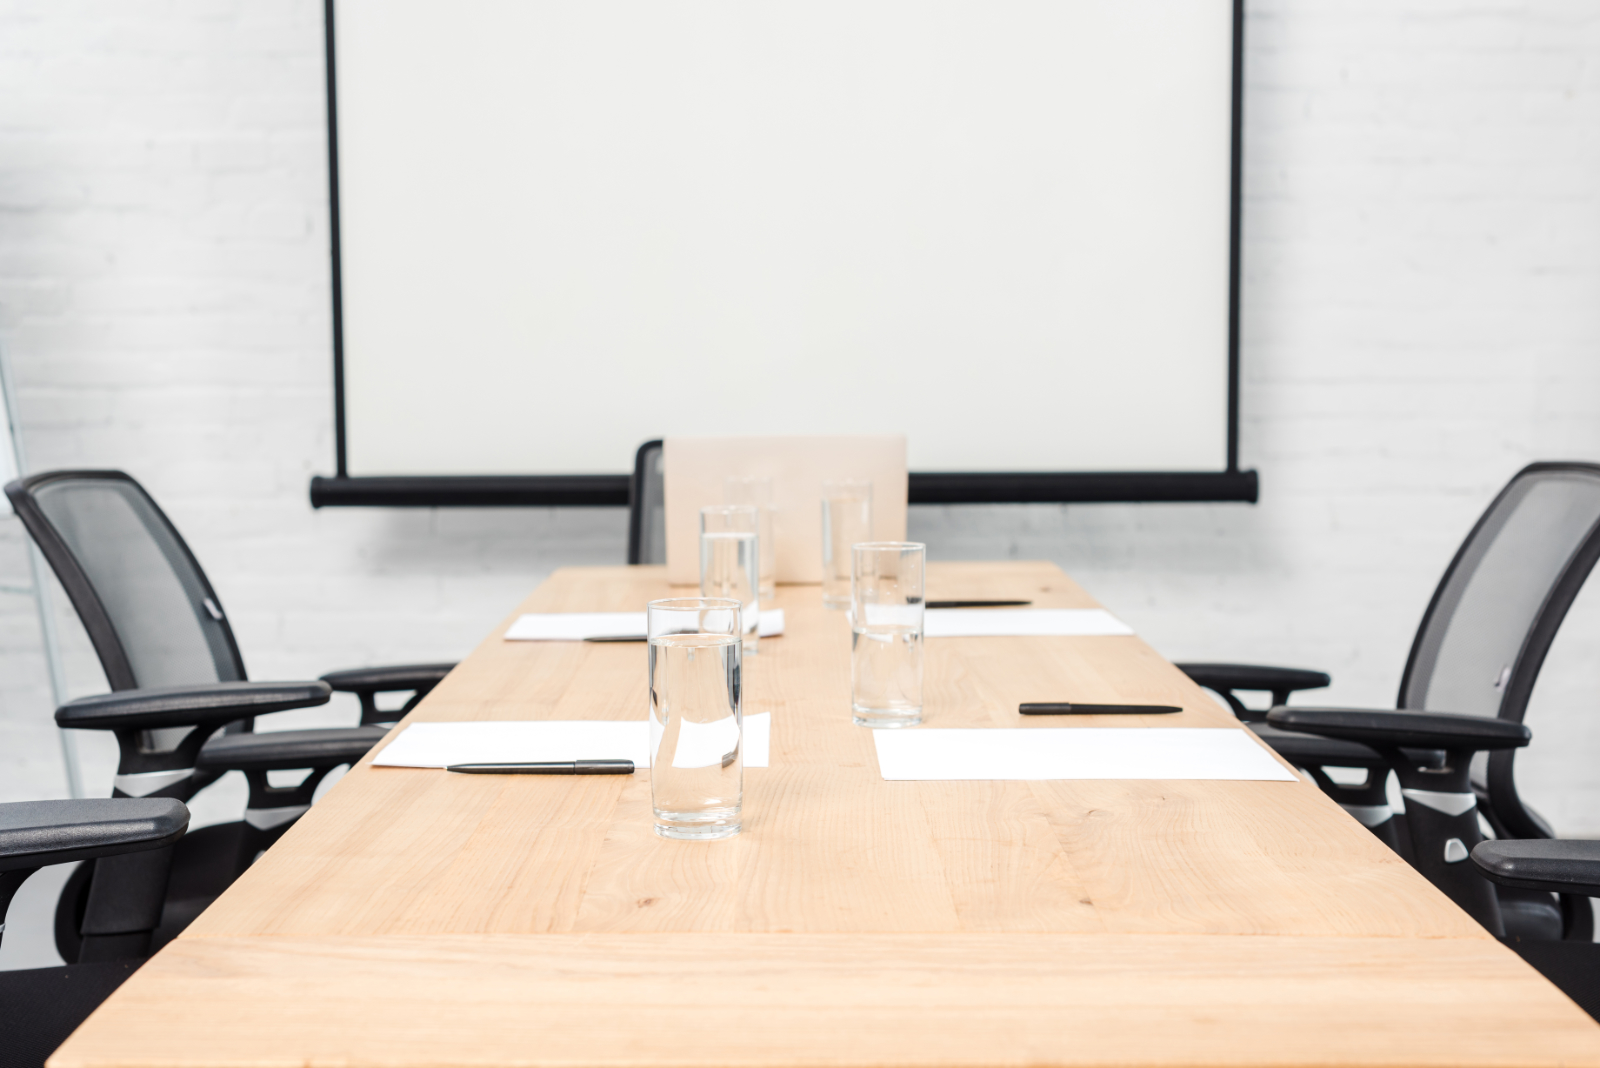 4 Factors to Consider When Renting a Meeting Space